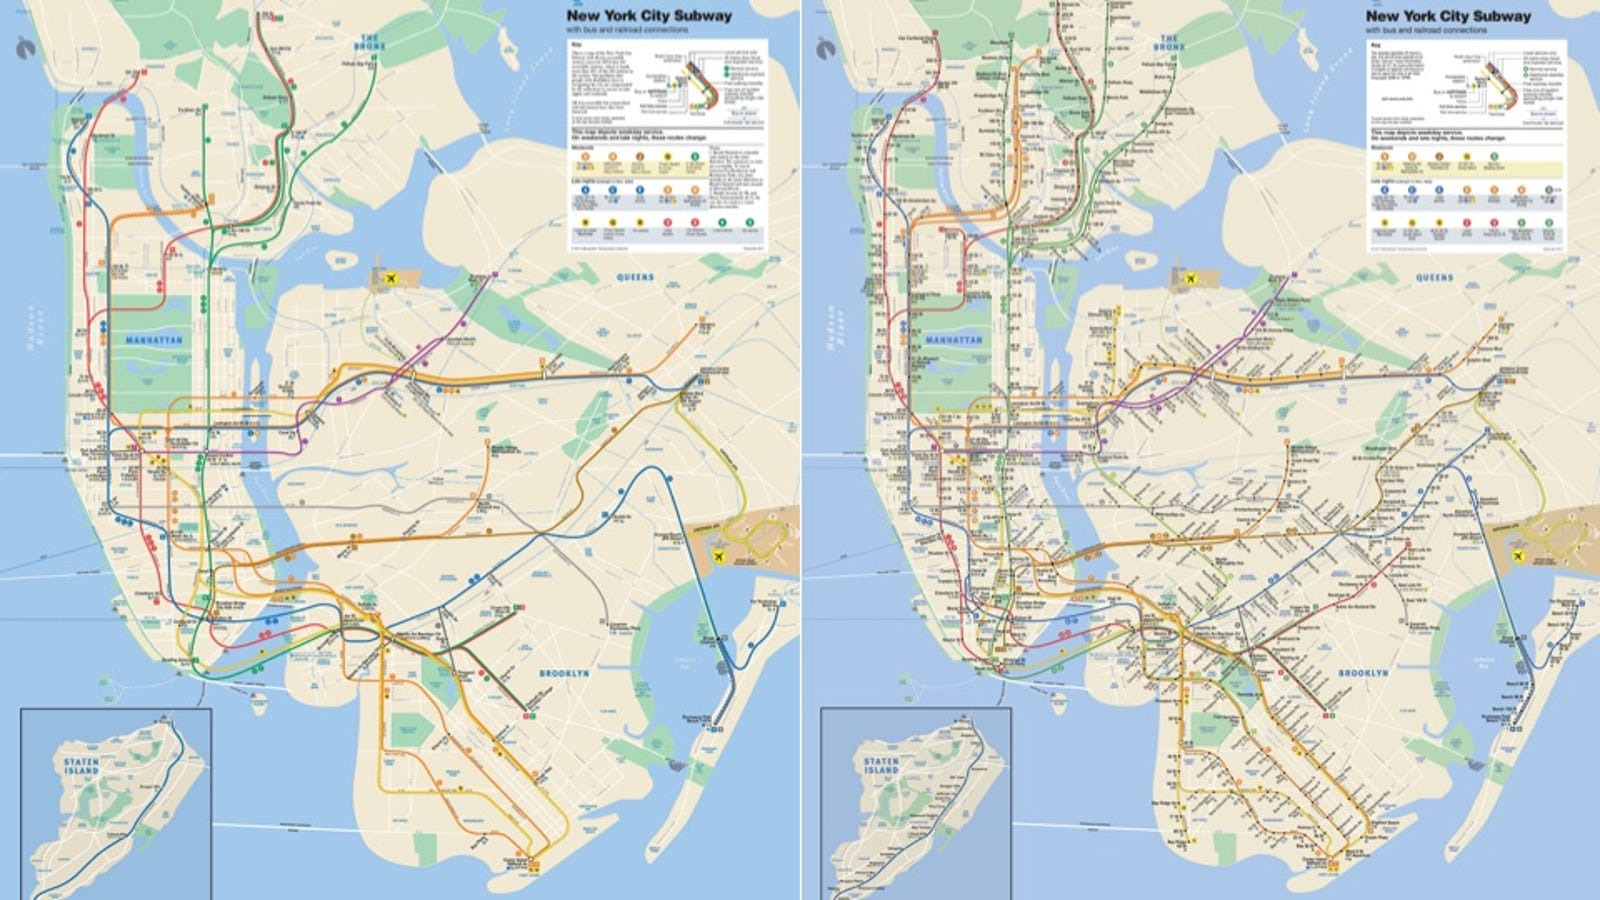 New York City Subway Map Wall Paper.A Simple Map Shows Just How Shitty The Nyc Subway System Is For